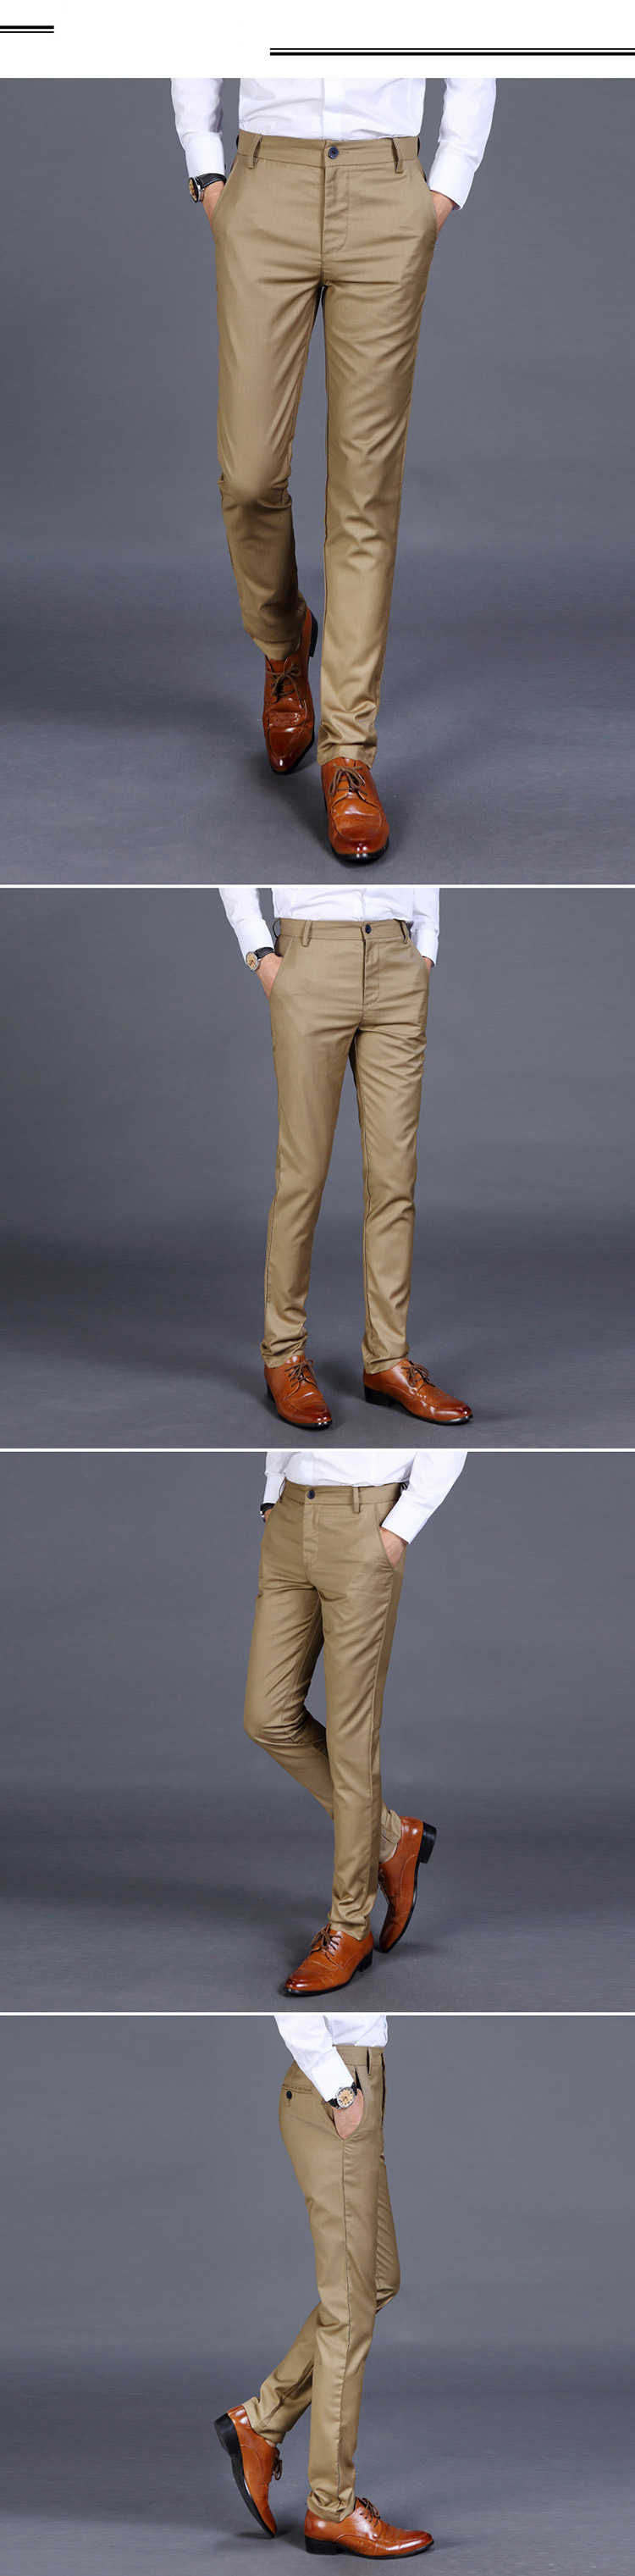 H87c75bc07bfc49509c1c39703257805aS HCXY 2019 Summer Men's Smart Casual Pants Men Slim Straight Suit Pants Male Trousers Thin Smooth fabric Solid classic trousers